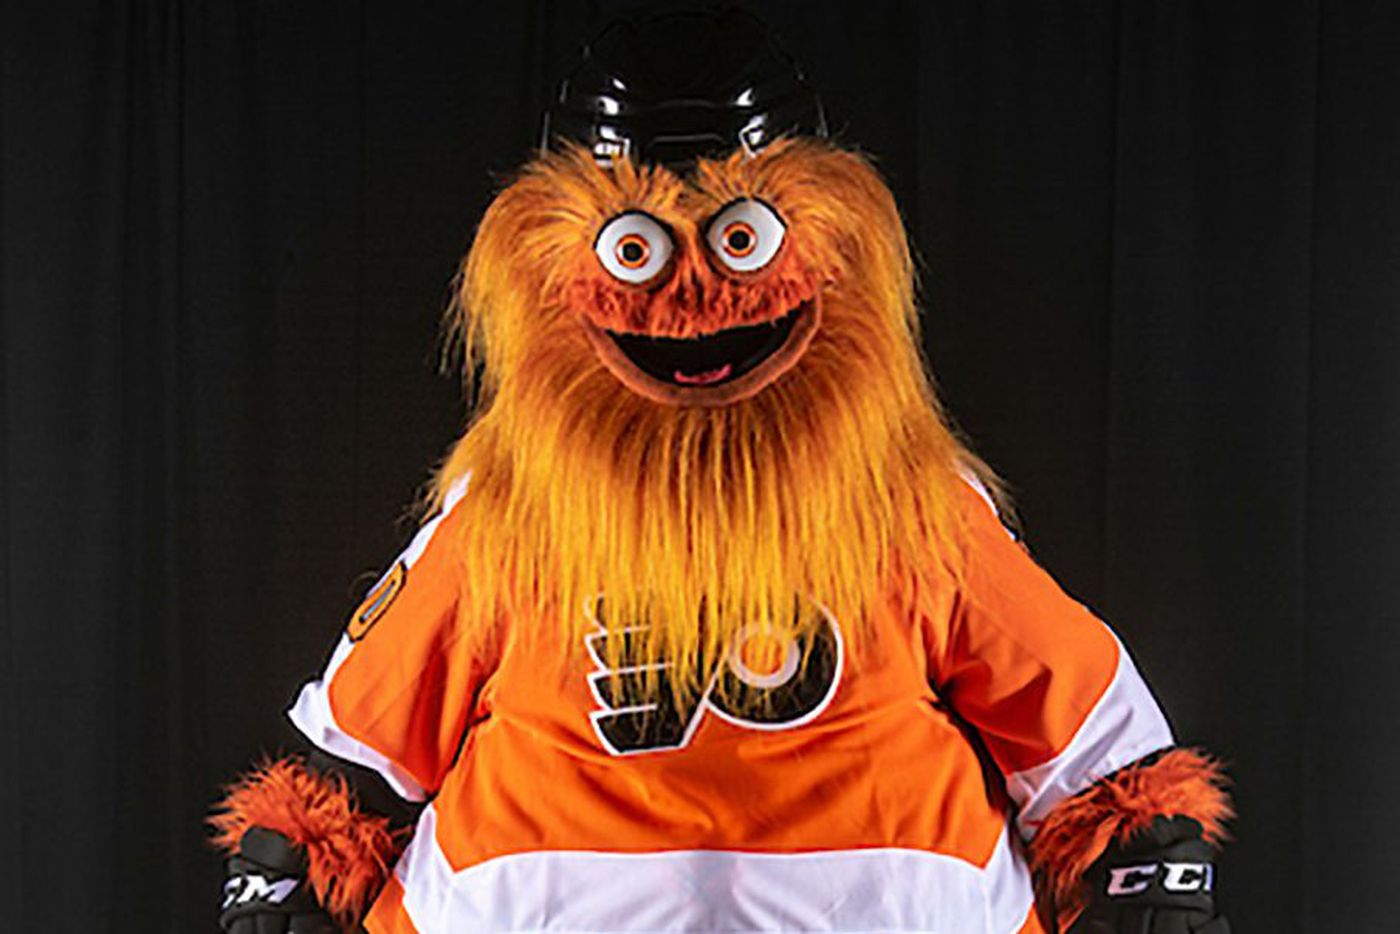 Flyers weigh in on Gritty, the new mascot: 'We'll see how gritty he is'